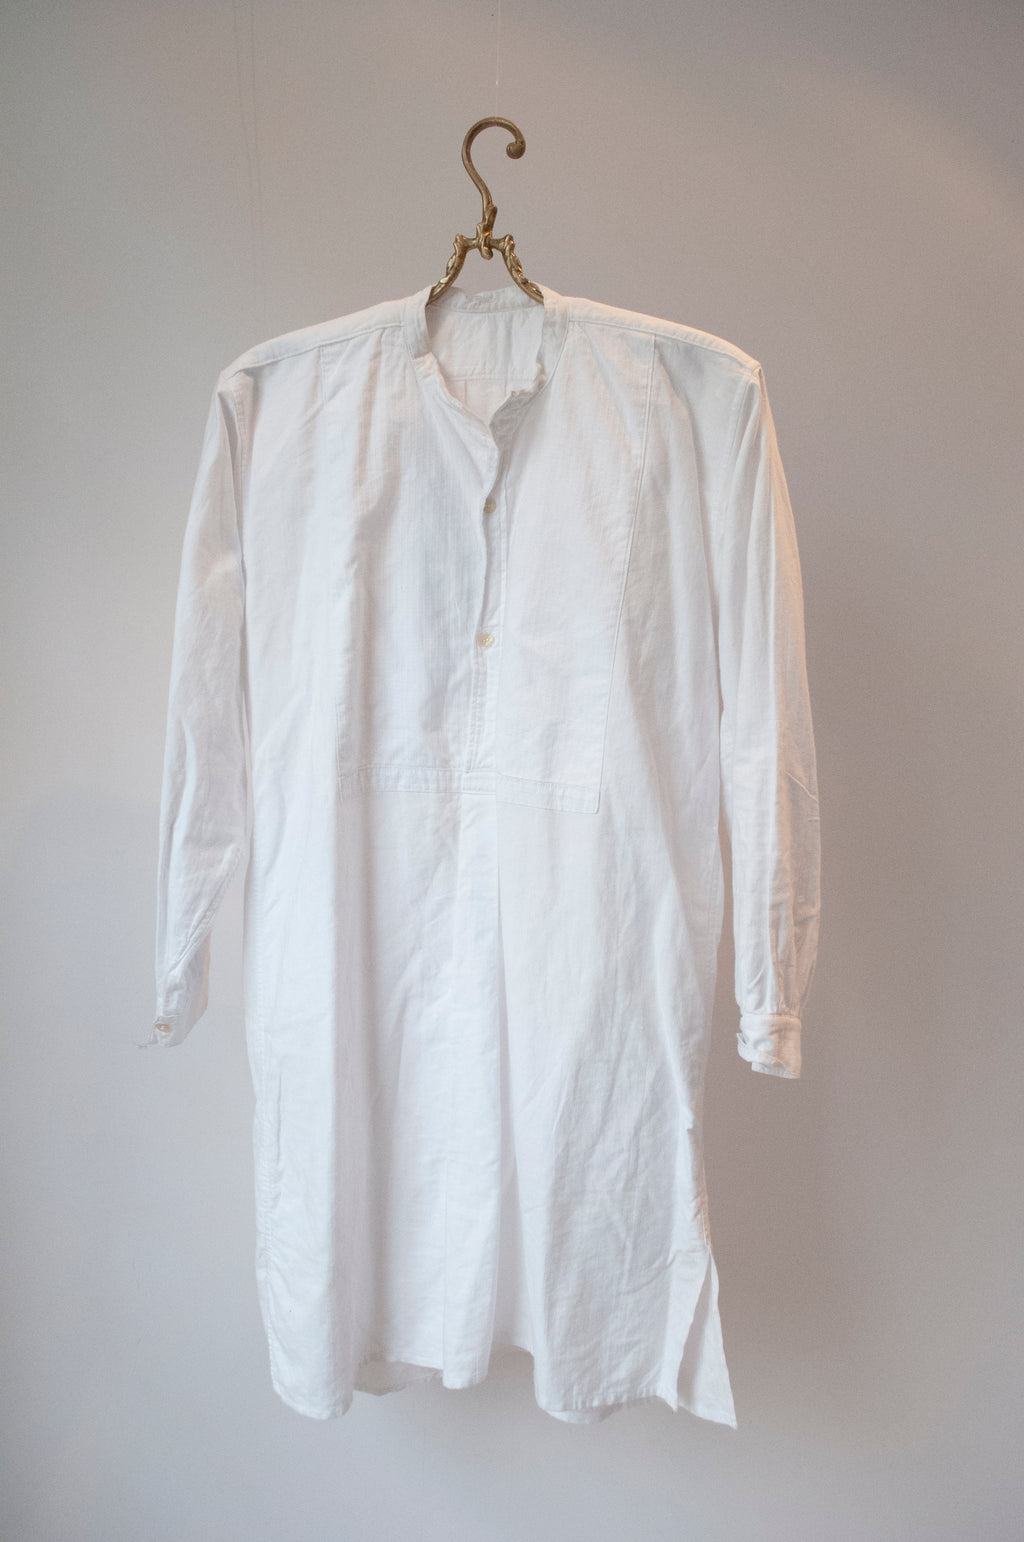 60s sleeping shirt